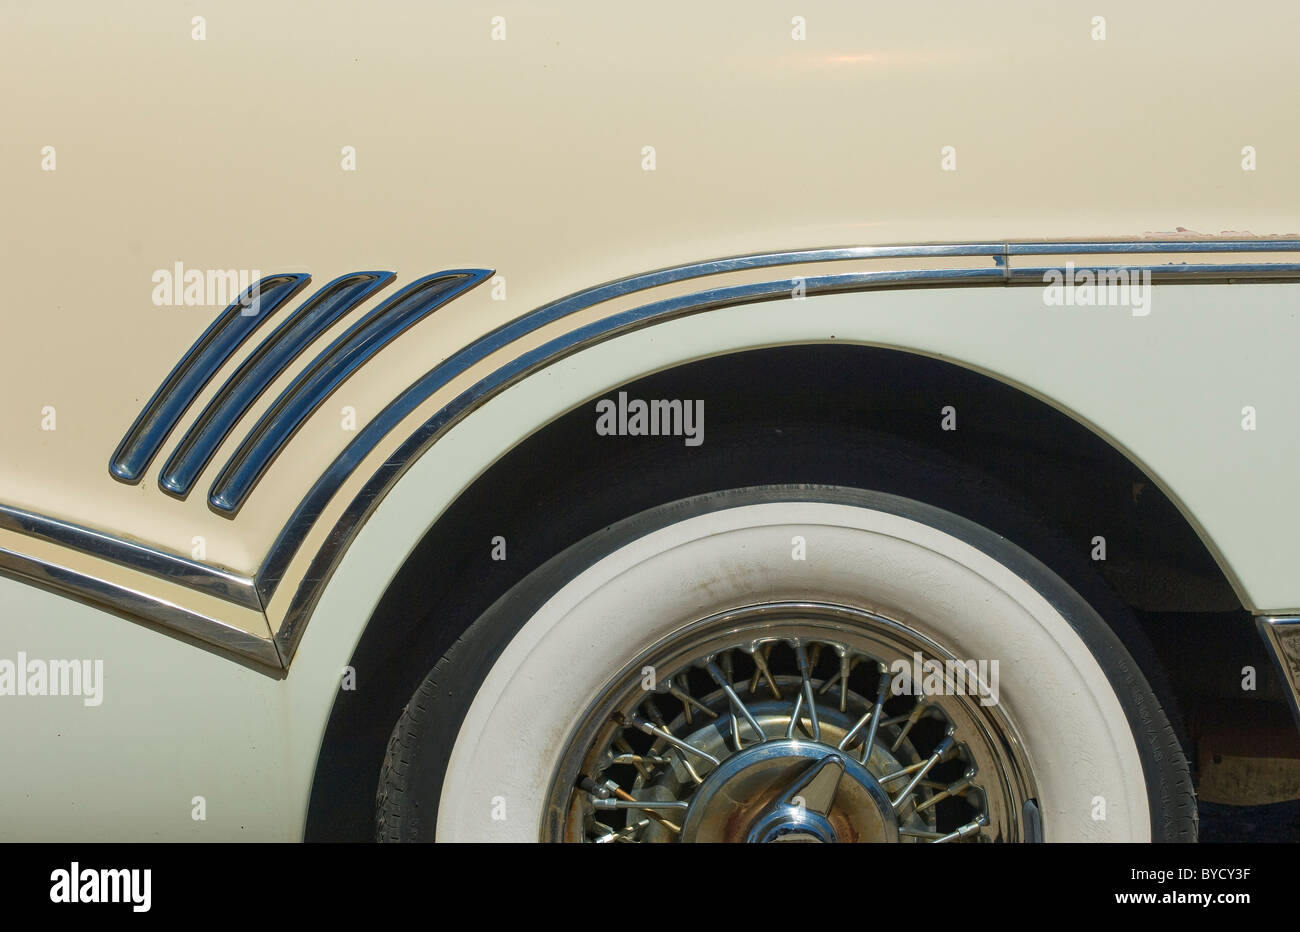 Chrome and whitewall tyres on Route 66 - Stock Image